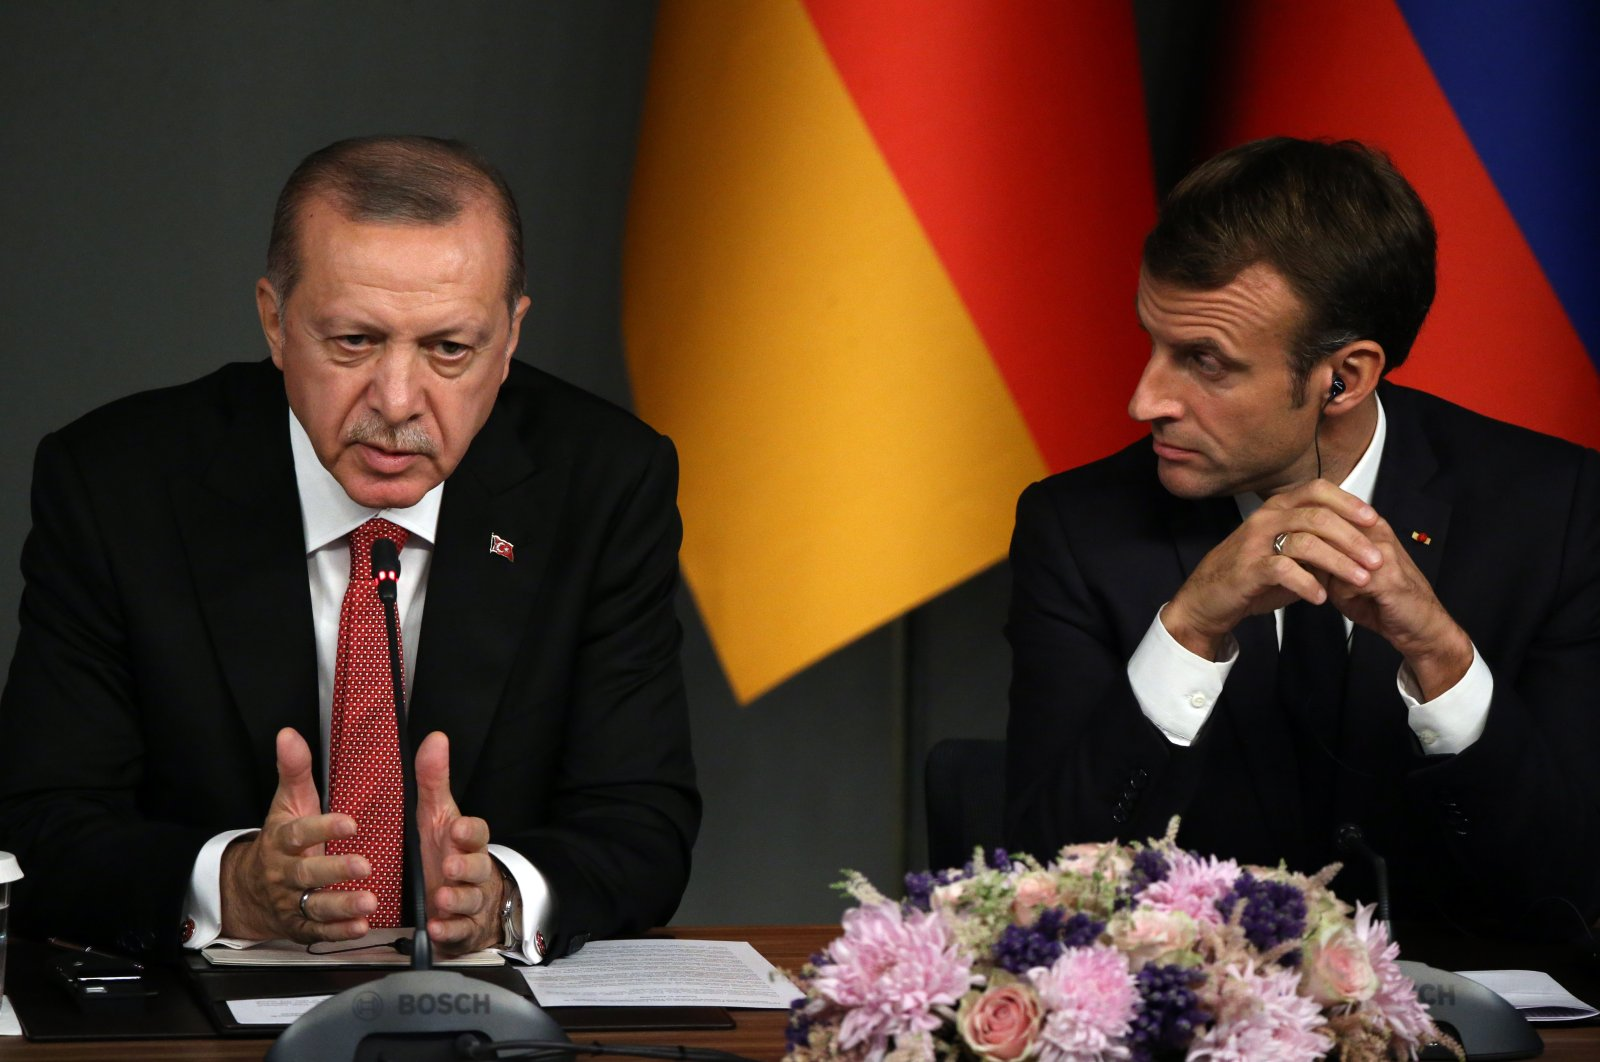 President Recep Tayyip Erdoğan (R) speeches as French President Emmanuel Macron (R) looks on during their joint press conference in Istanbul, Turkey, October, 27,2018. (Getty Images)